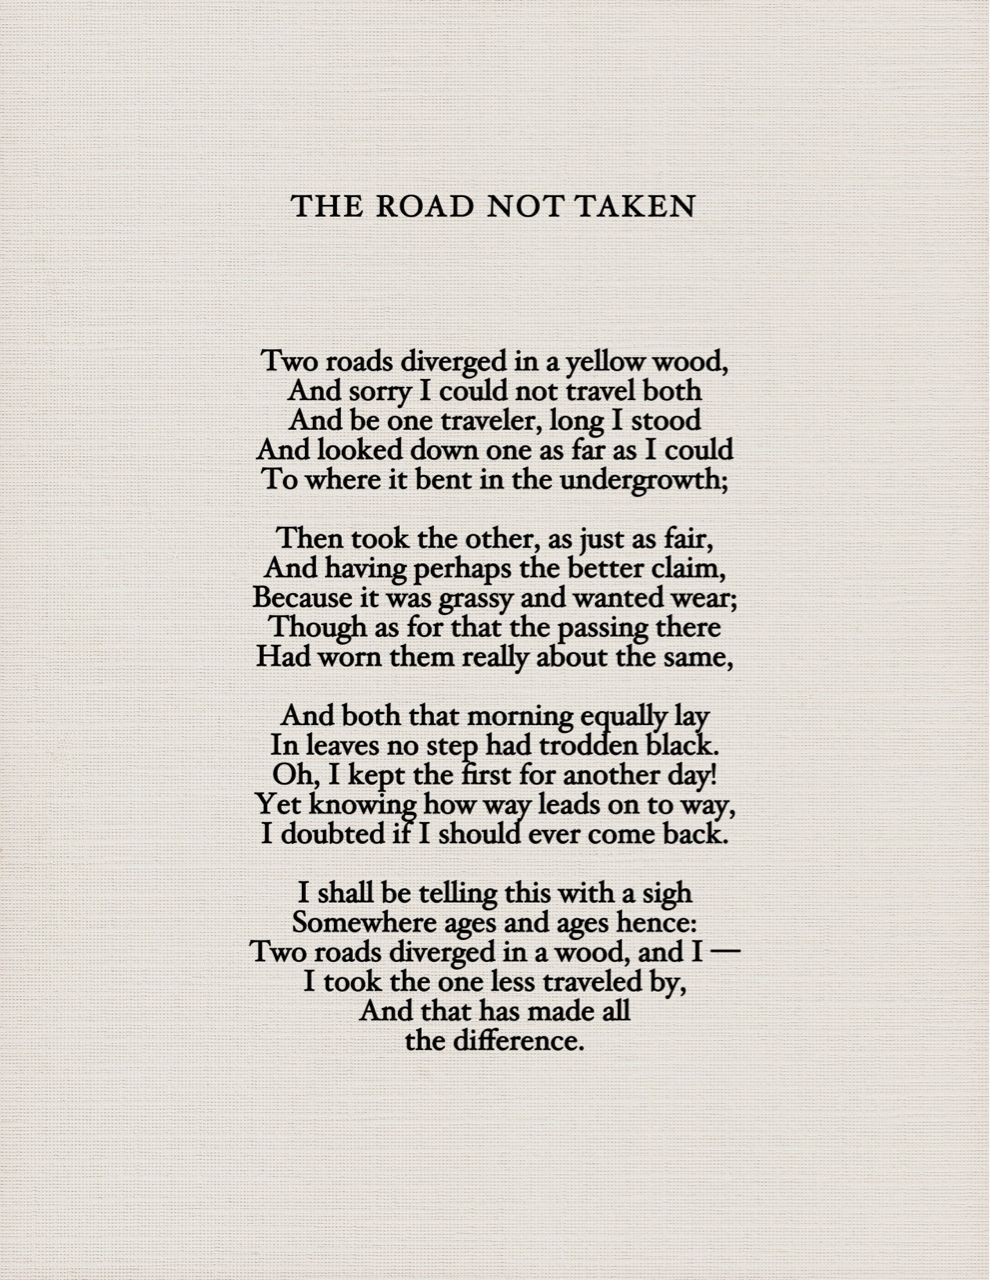 robert frosts poem the road not taken essay Robert frost analyses the concept of journeys in his poem 'the road not taken', using allegory as a technique to convey a message of an inner and emotional journeythese journeys are.